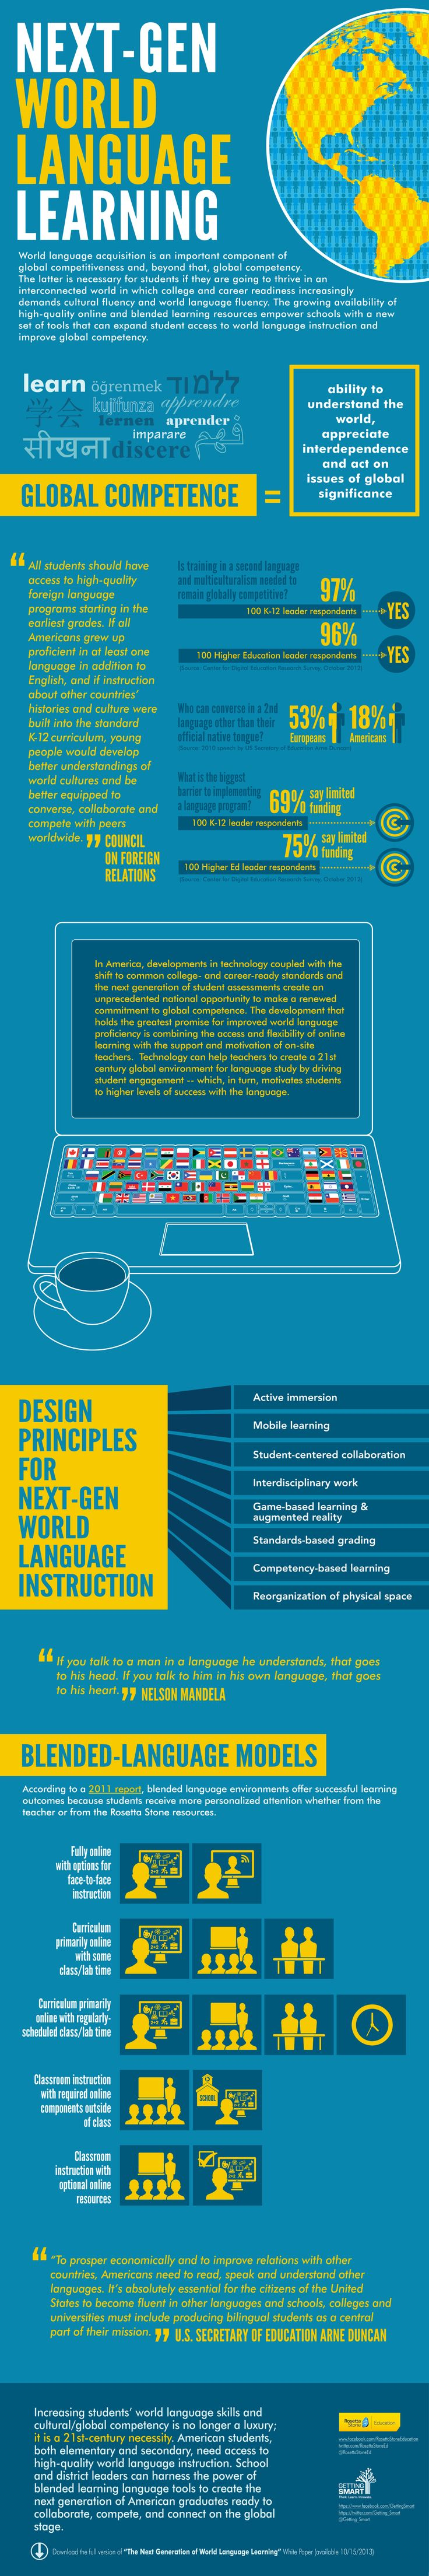 Infographic: Next-Gen World Language Learning - Getting Smart by Getting Smart Staff - foreign language, infographic, langchat, Next Gen Lea...